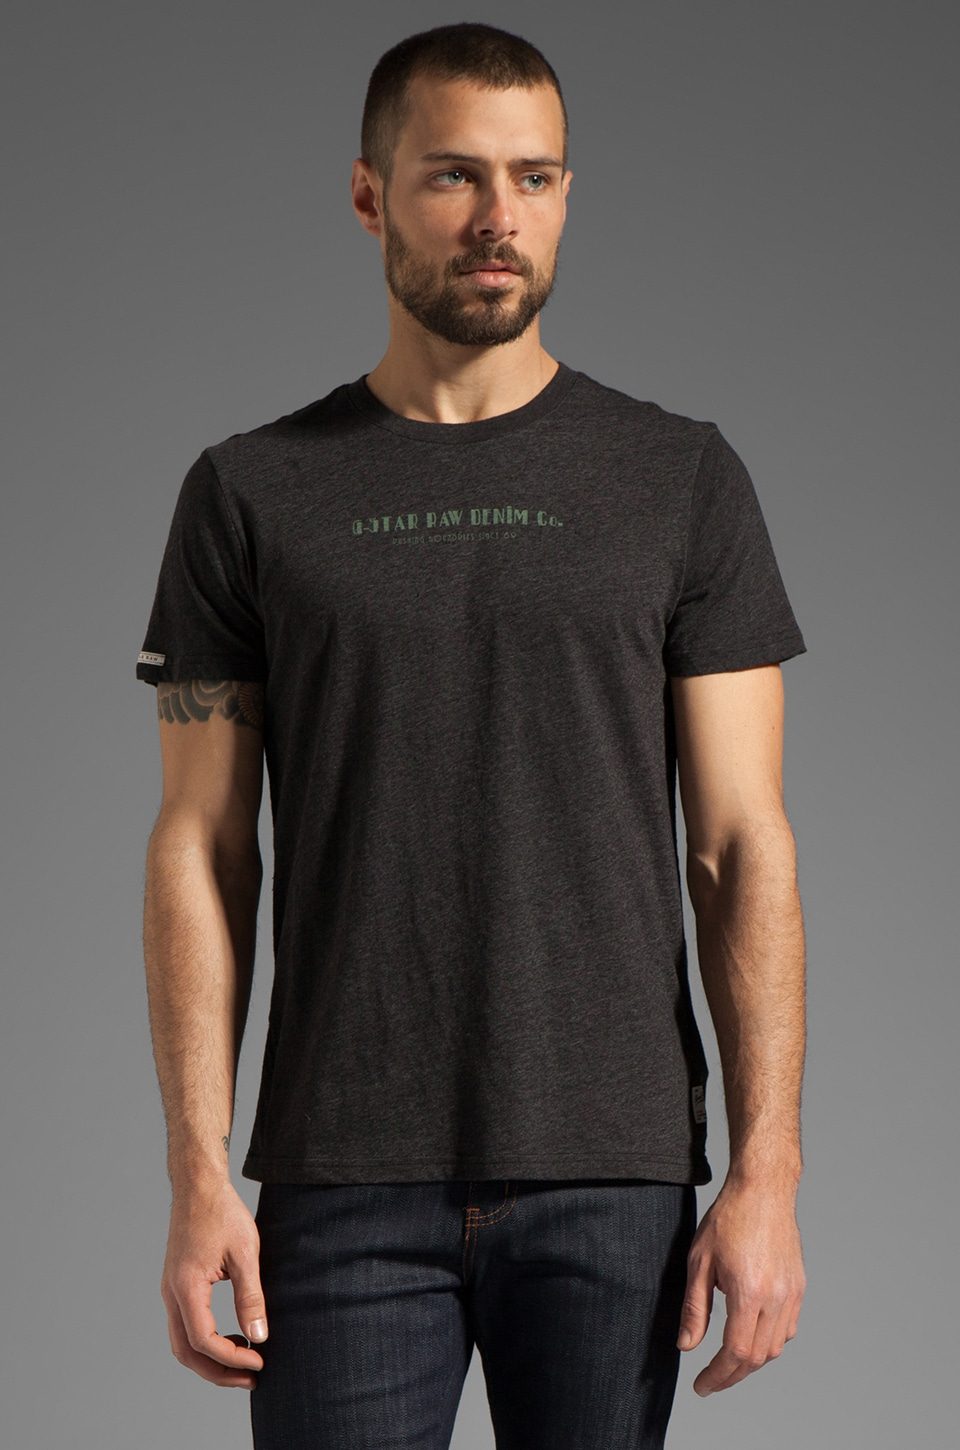 G-Star Art Atlas Tee in Black Heather